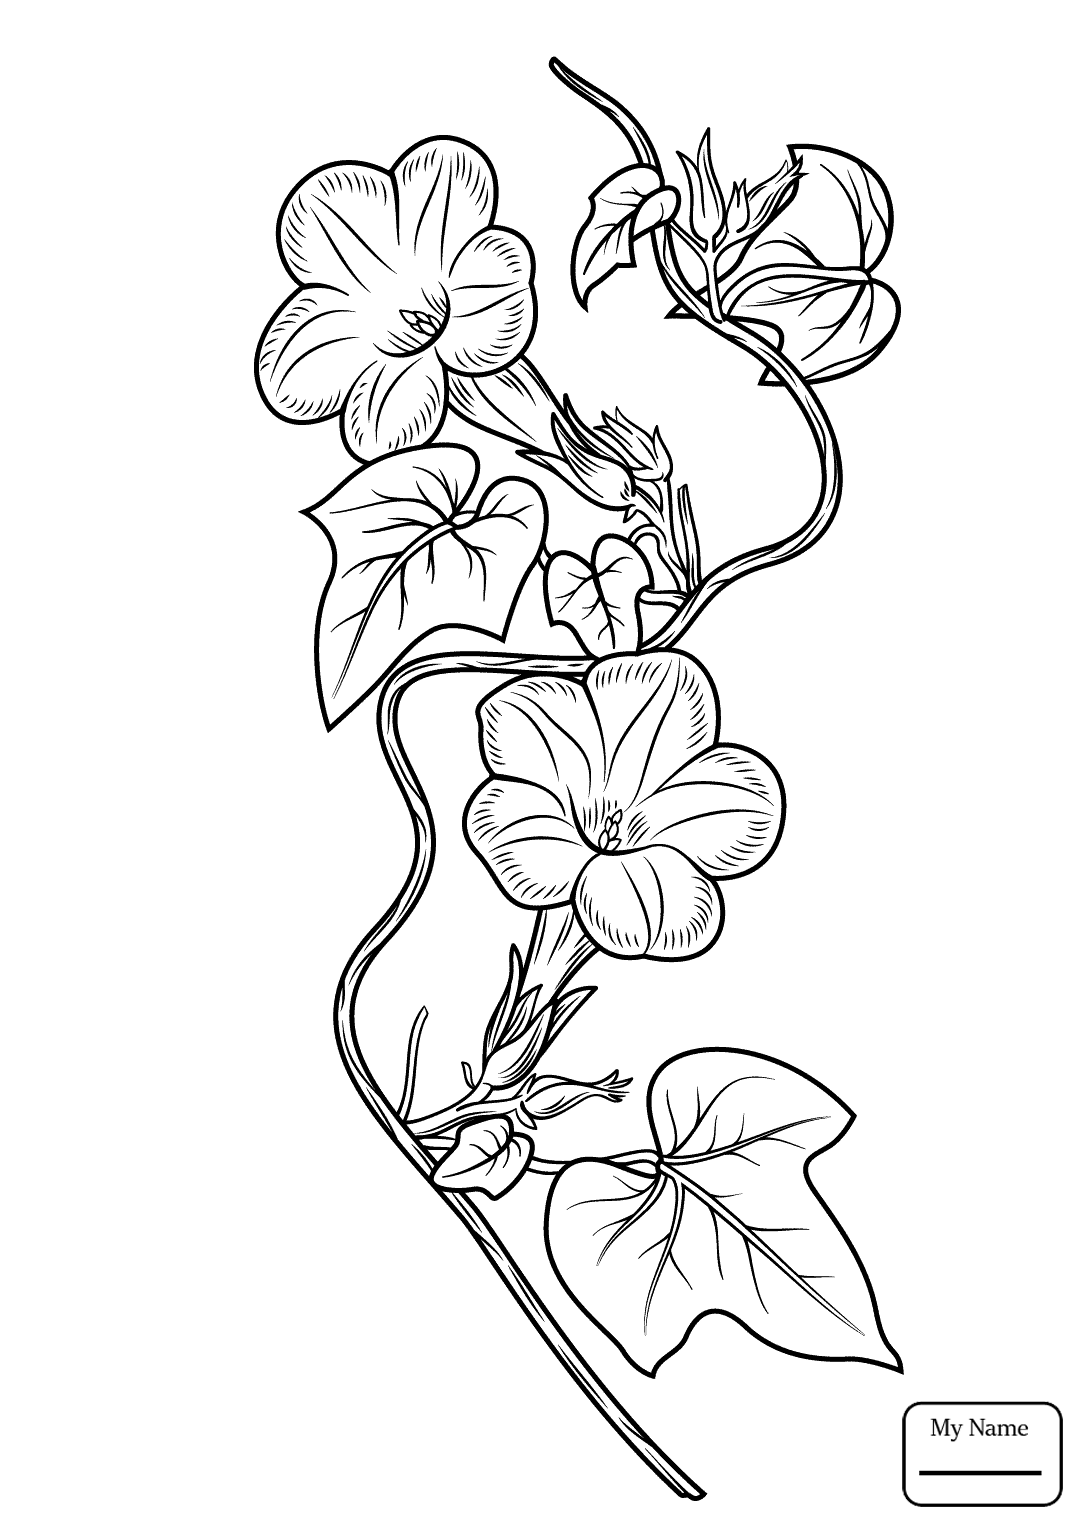 1081x1530 Ivy Leaf Morning Glory Flowers Coloring Pages For Kids